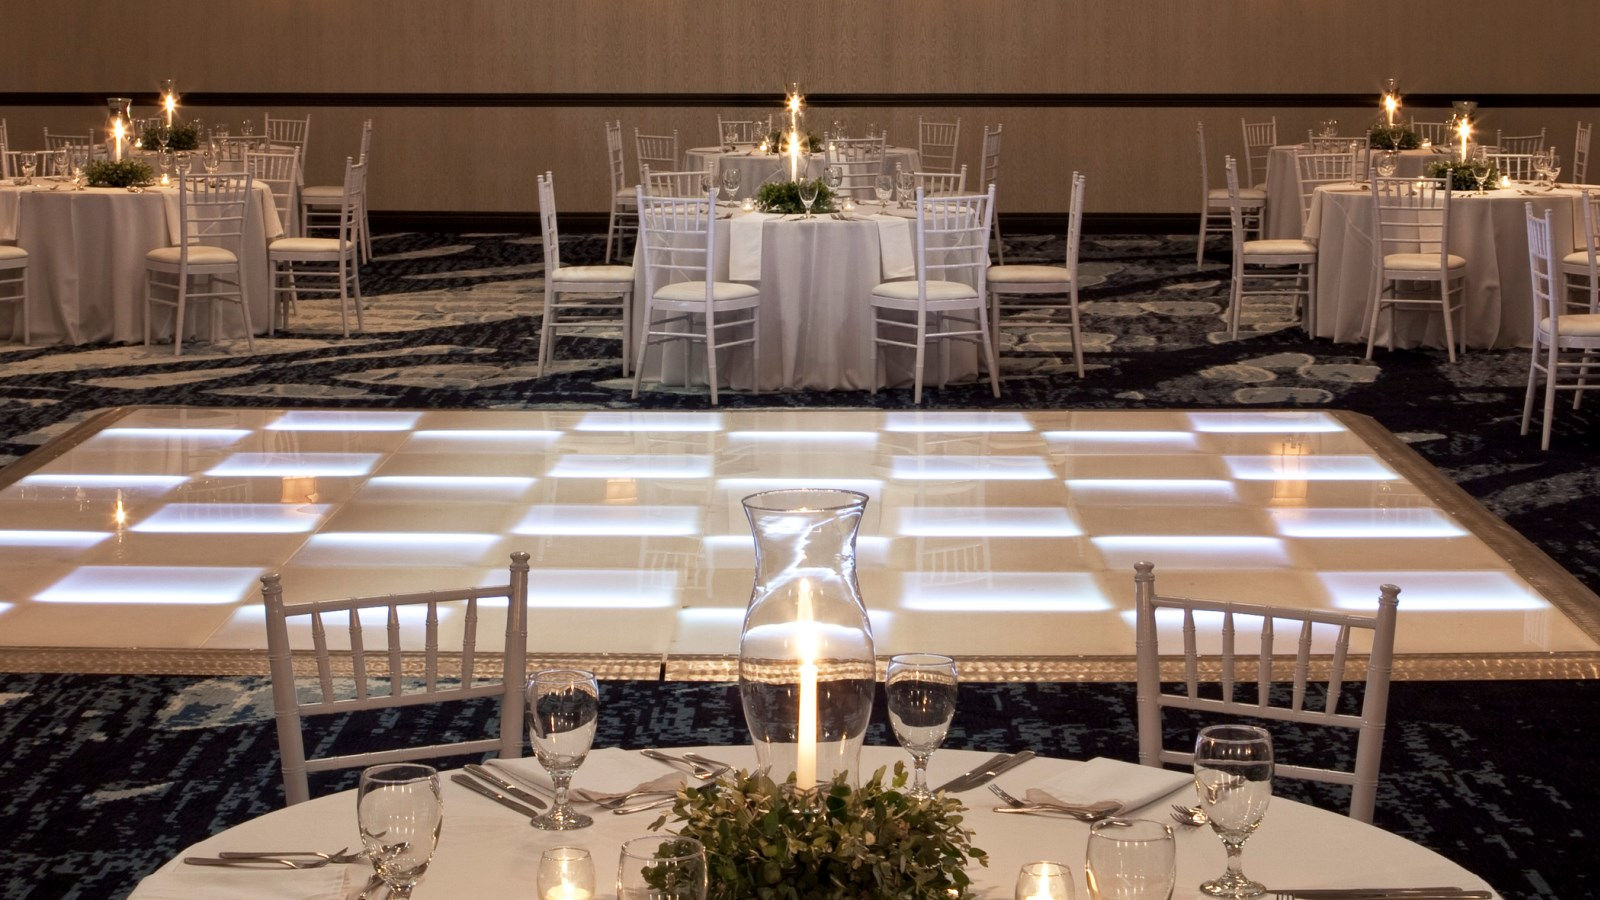 Wedding Venues OKC - One Broadway Ballroom